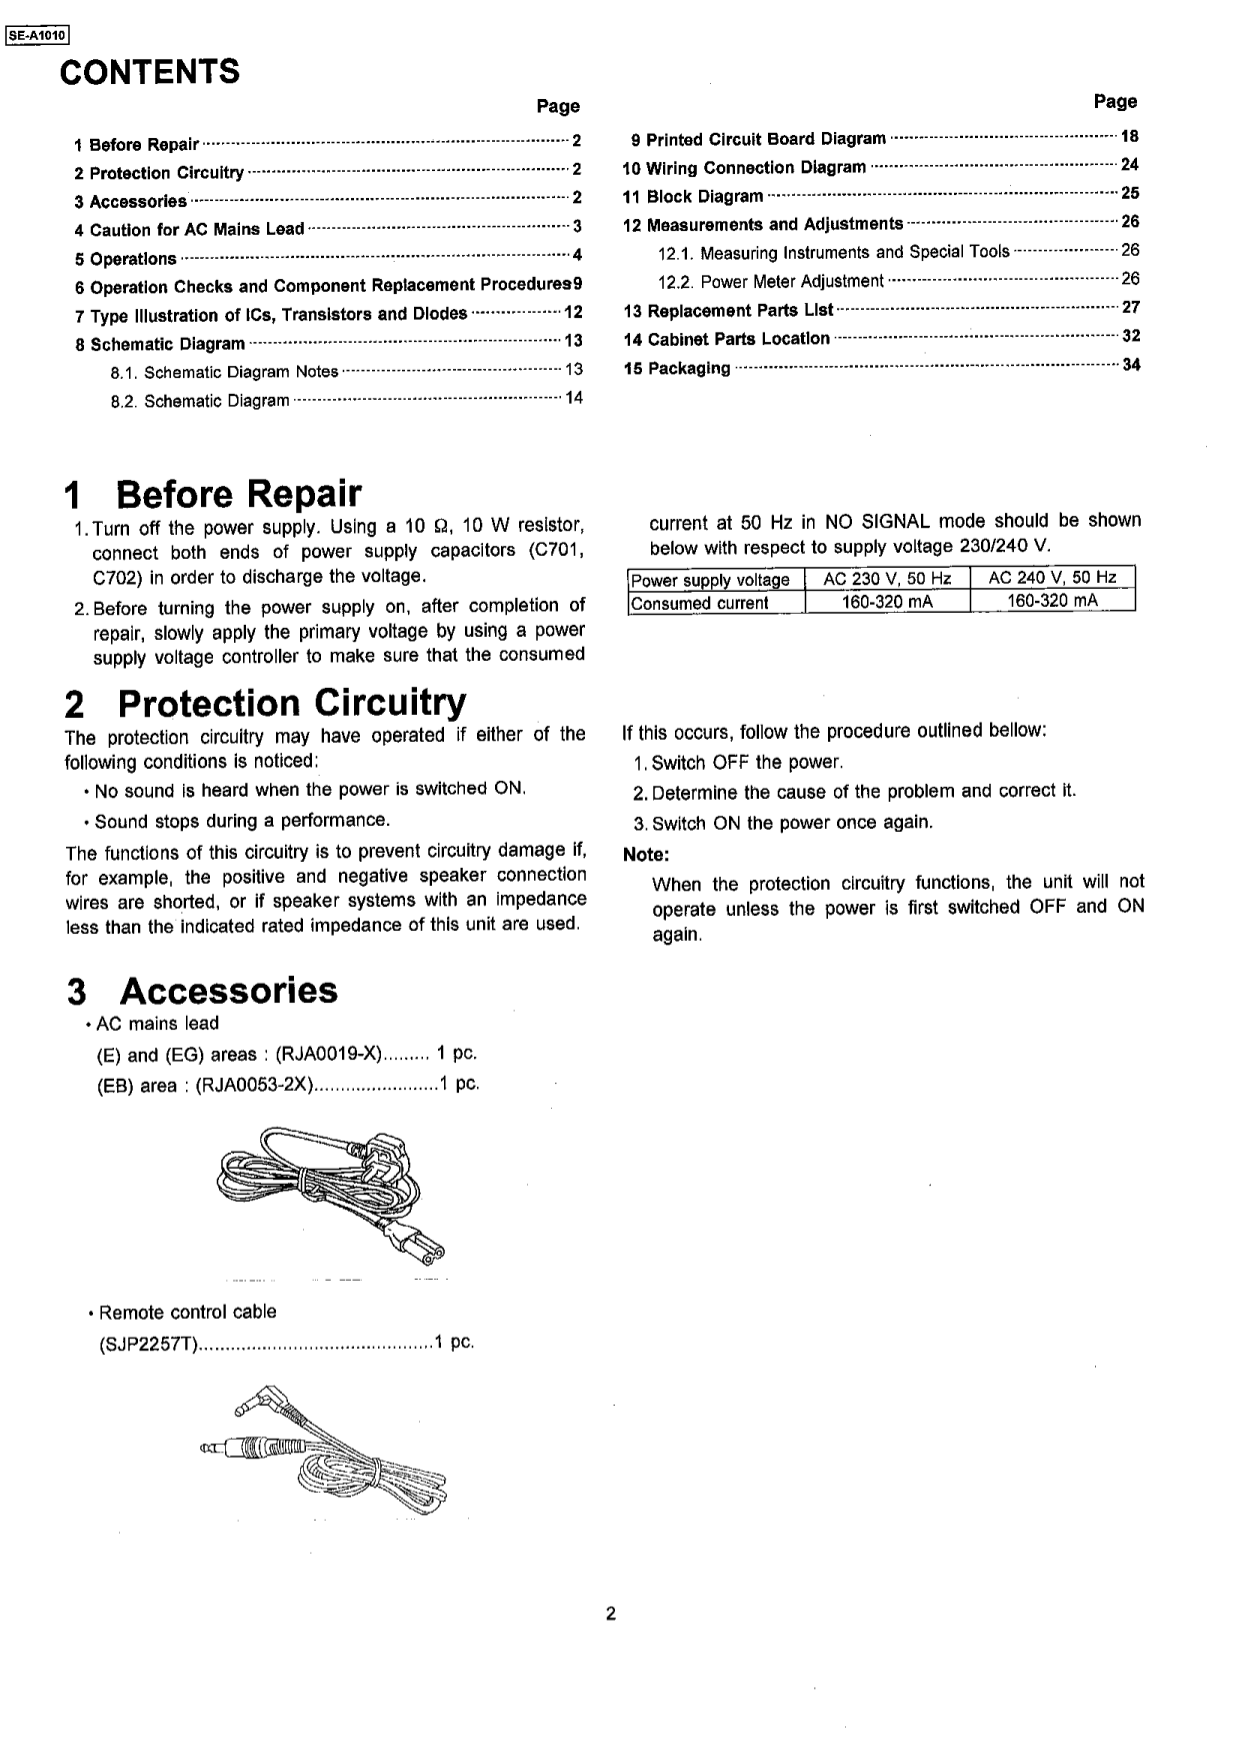 Pdf Manual For Panasonic Amp Se A1010 Wiring Diagram Page Preview